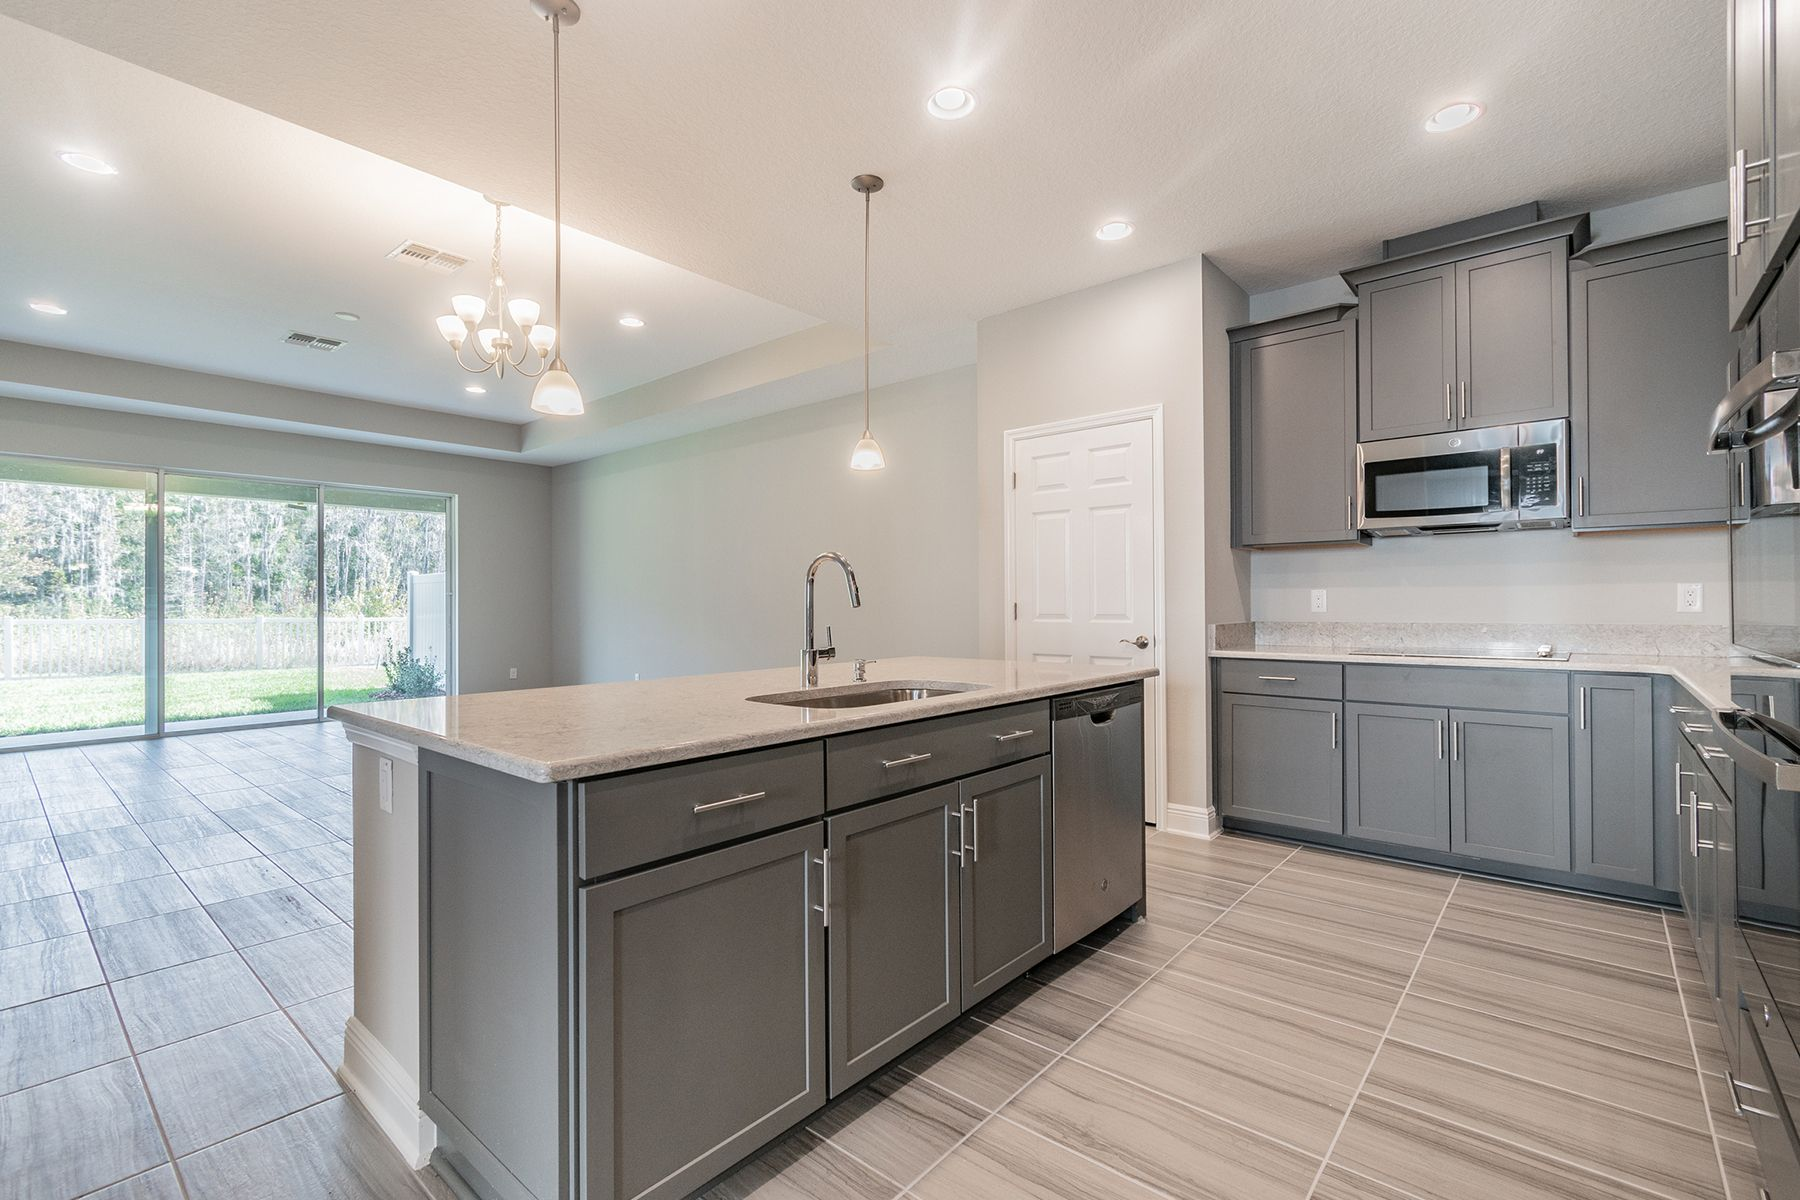 Kitchen featured in the Ravello By M/I Homes in Tampa-St. Petersburg, FL